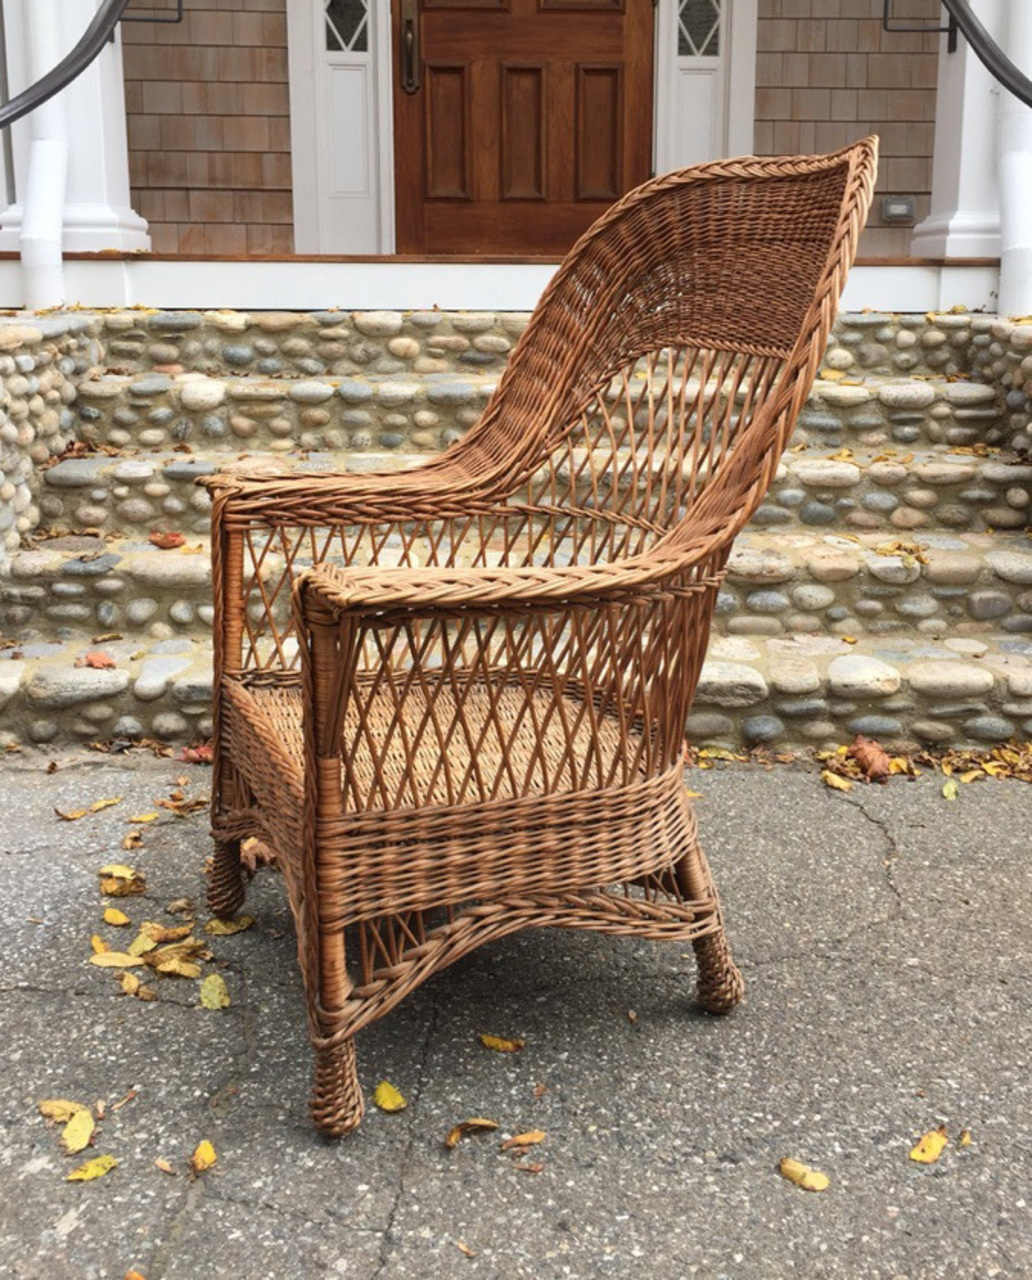 Antique Wicker Chairs Antique Wicker Chair The Wicker Shop